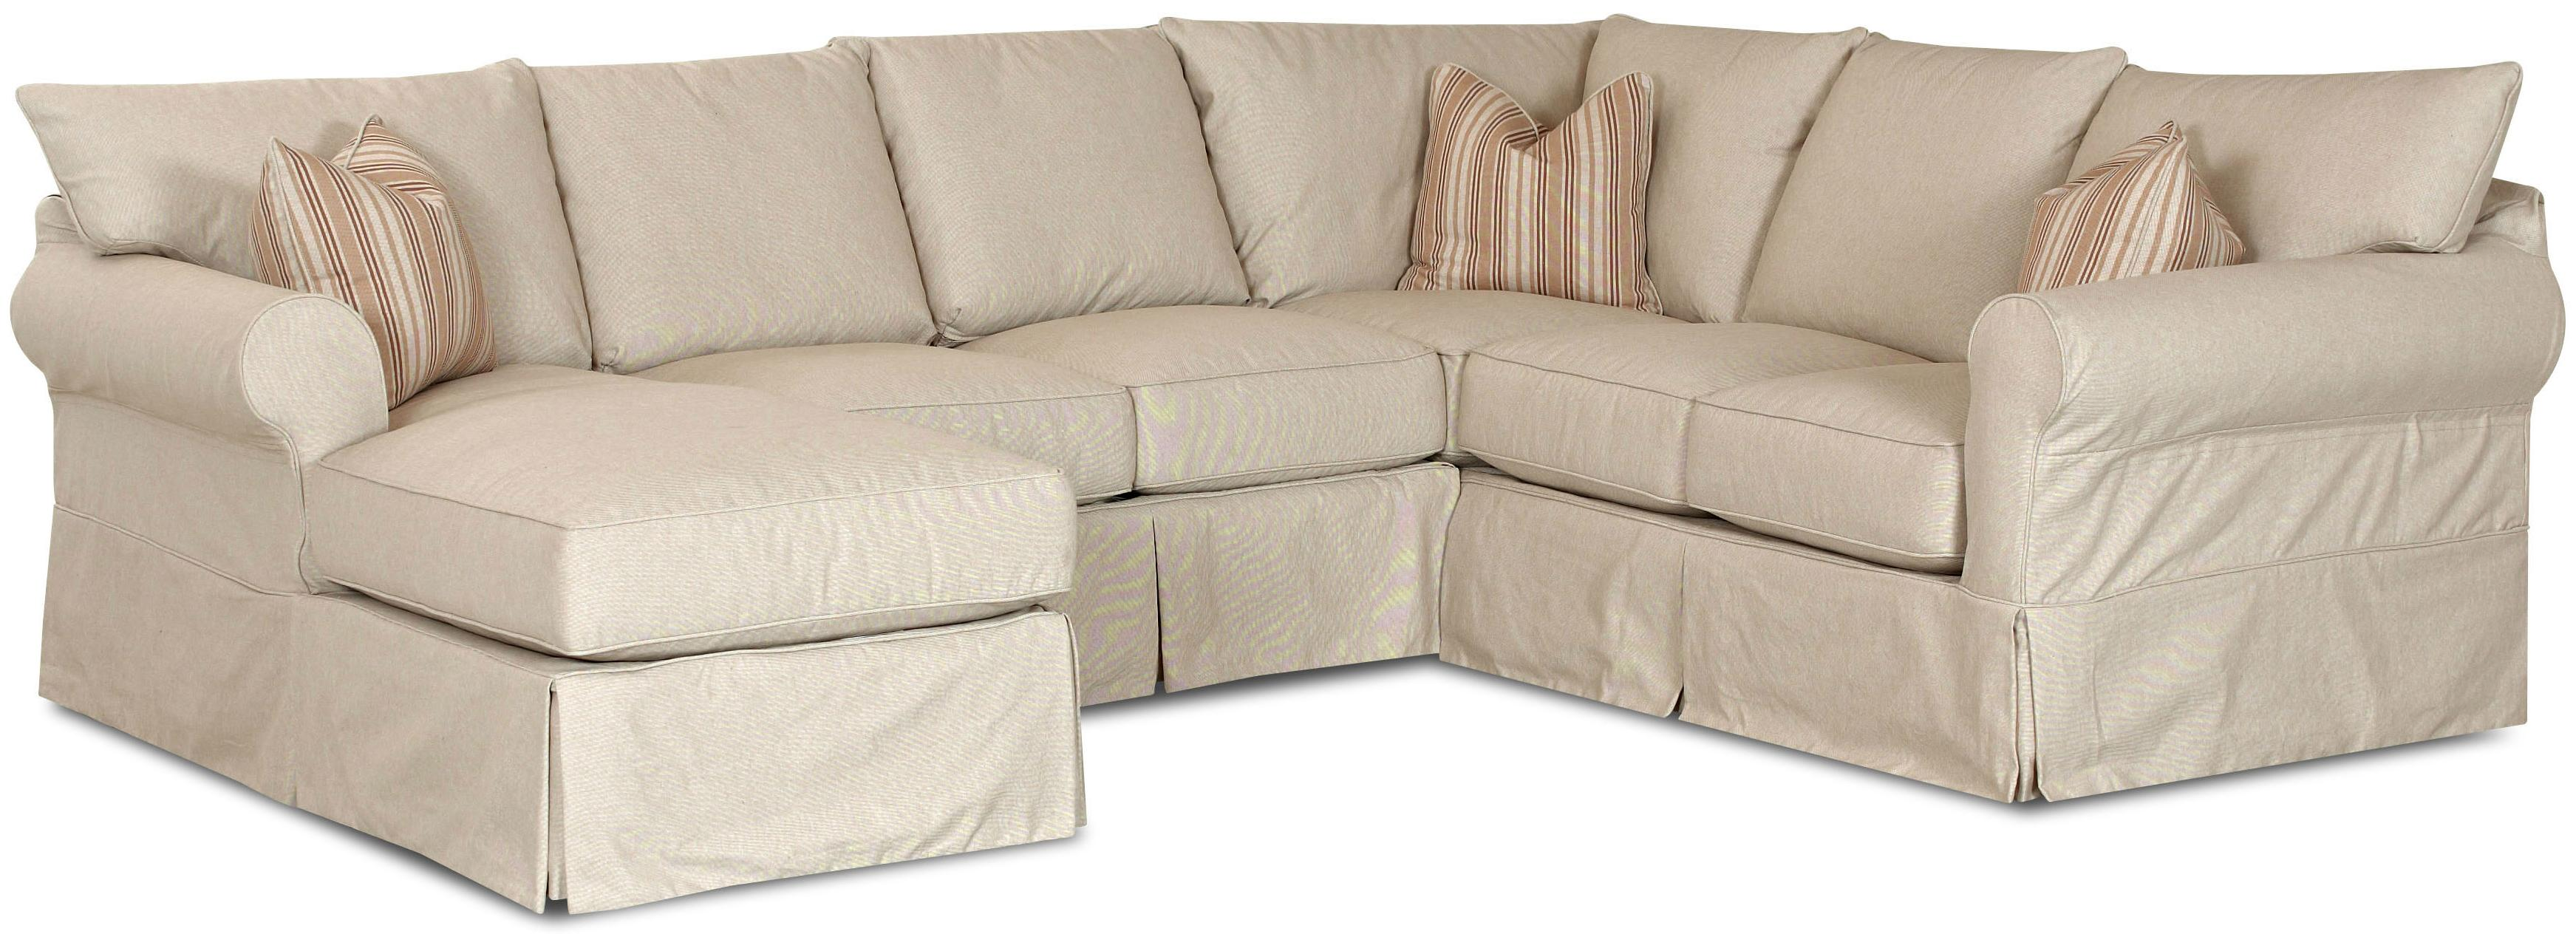 slip cover sectional sofa with left chaise